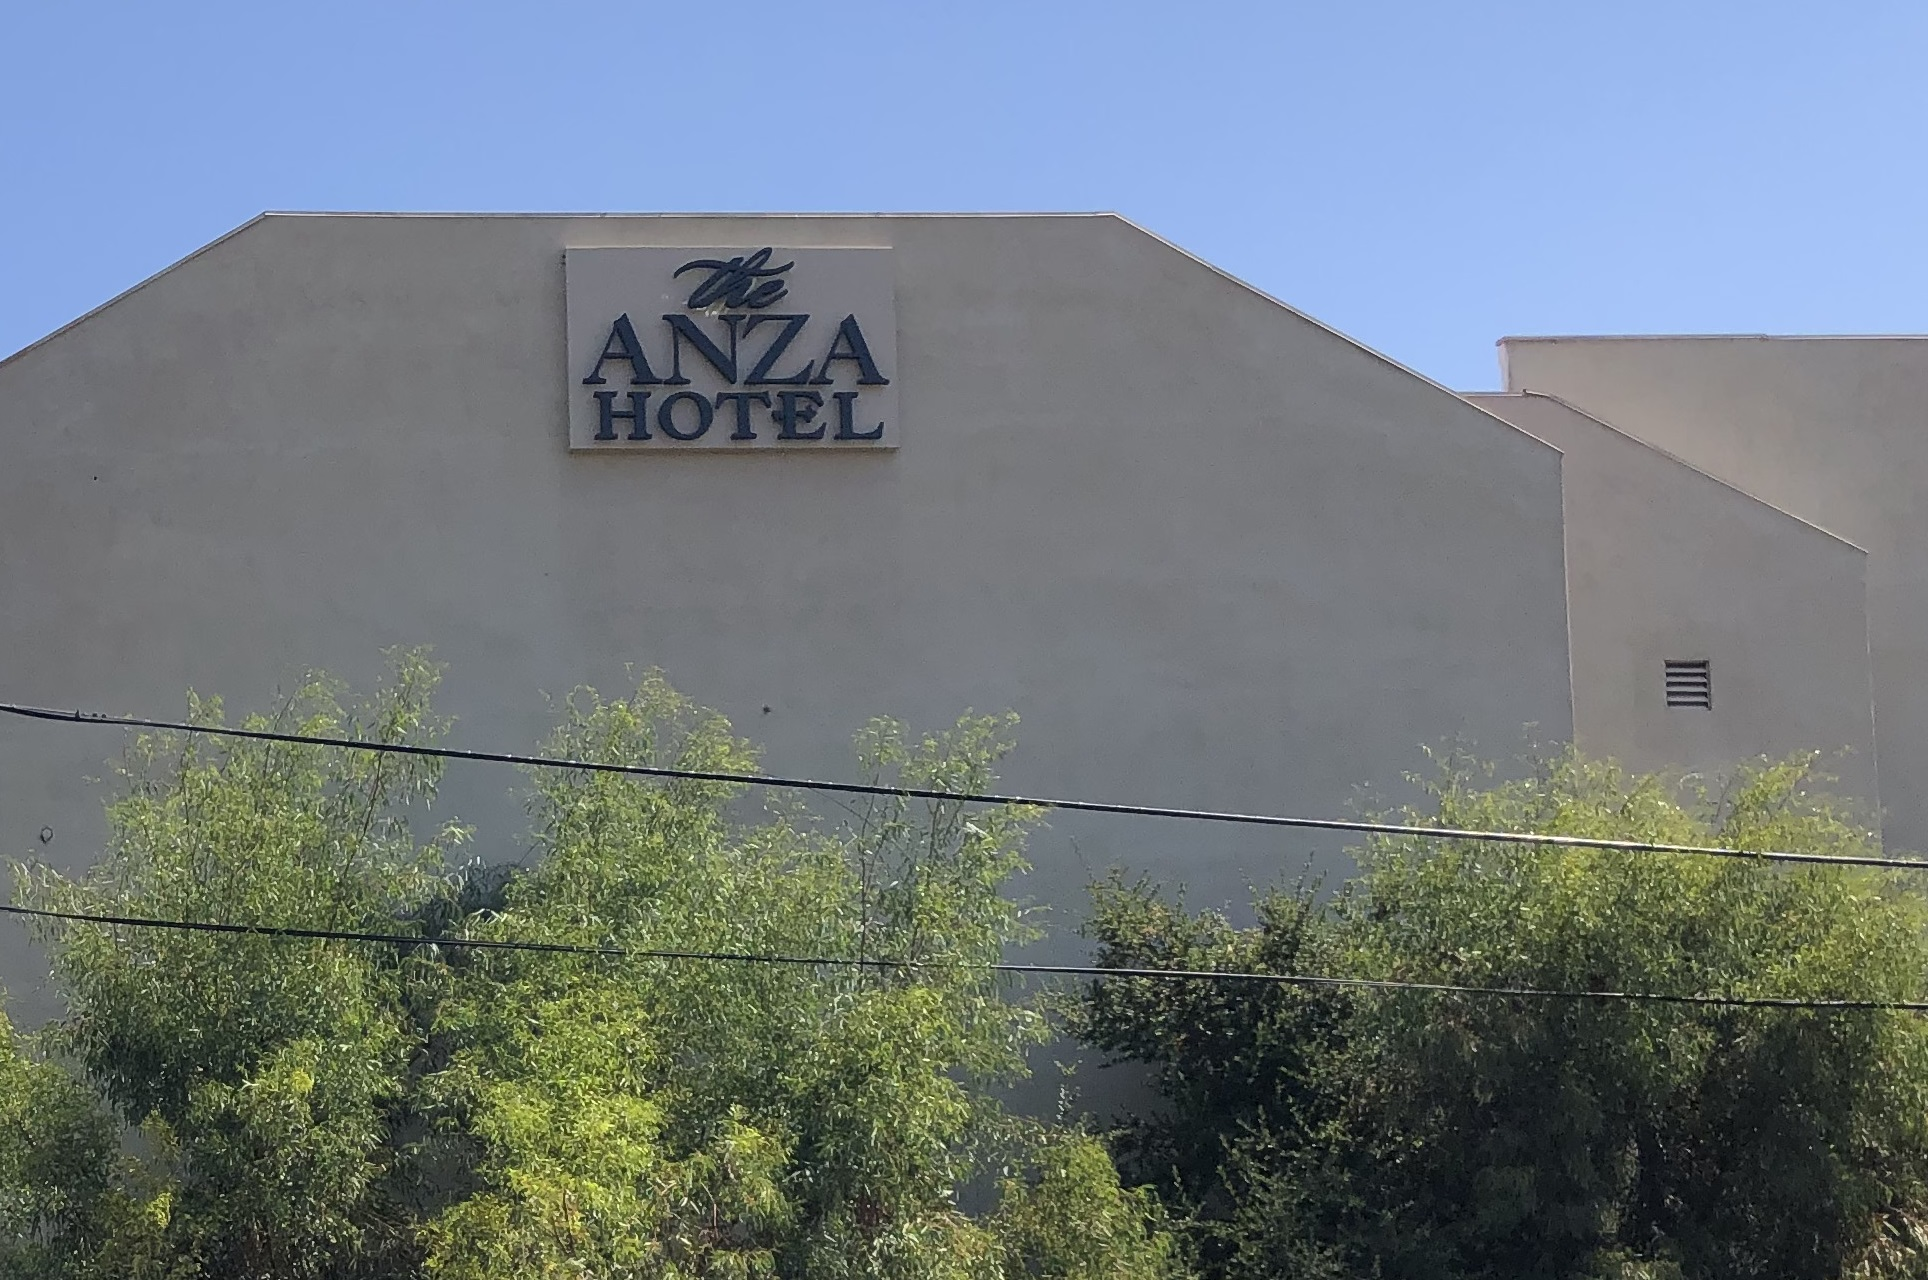 We installed sets of new halo lit channel letters for Hotel Anza. With these hotel channel letters, the Calabasas brand will stand out even more.